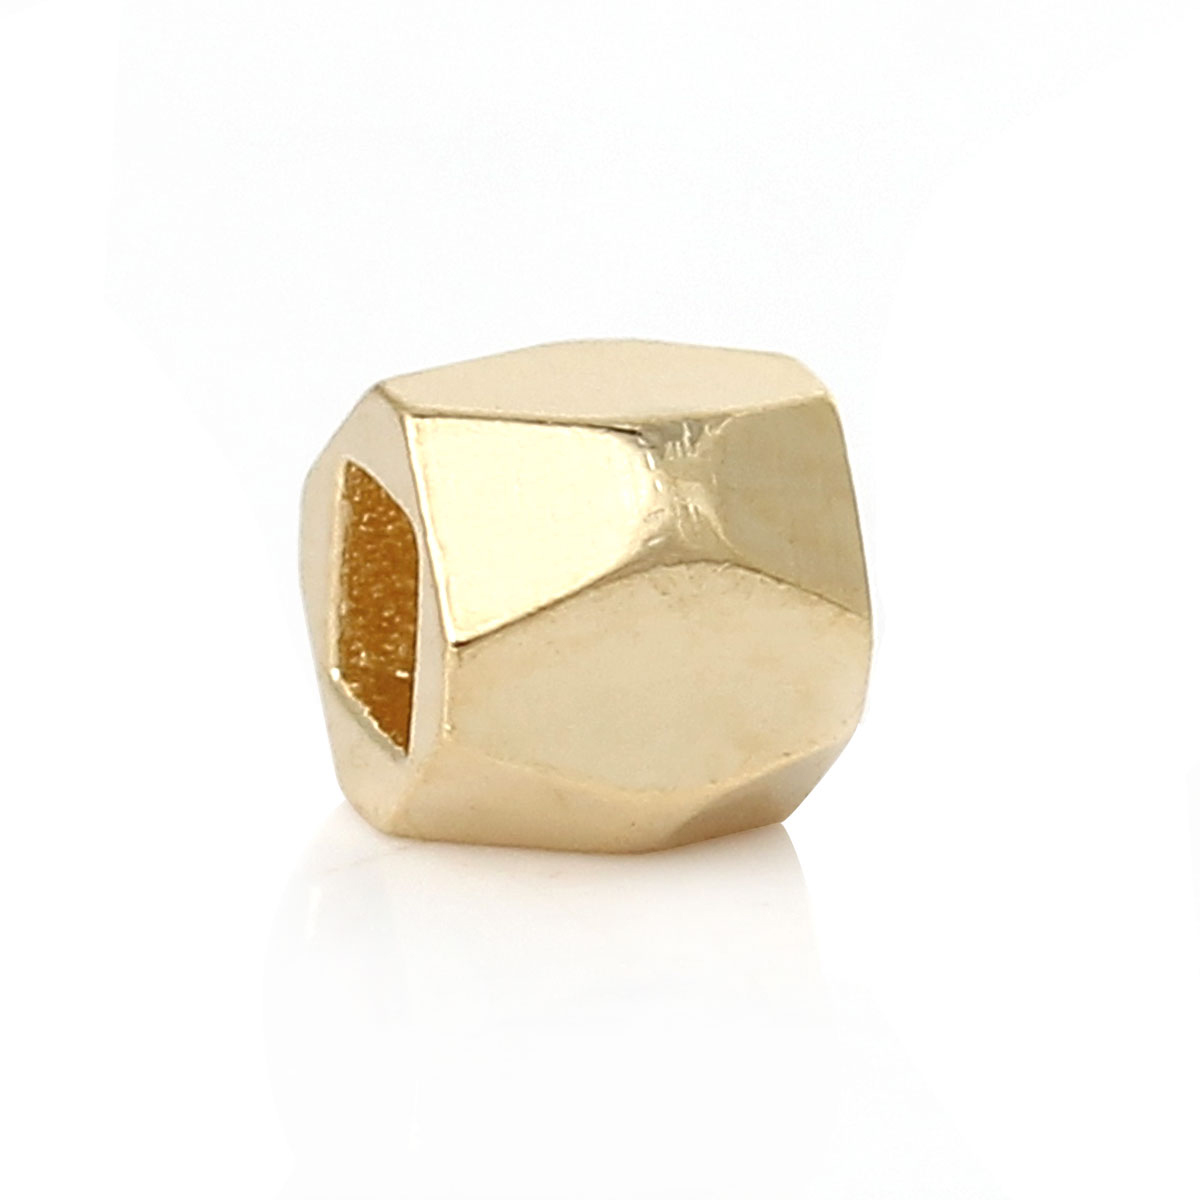 x 3.4mm 1/8 1/8 Doreenbeads Copper Spacer Beads Cube Gold Color Faceted About 3.4mm ,hole:approx 1.7mm X 1.7mm,5 Pieces Beautiful In Colour